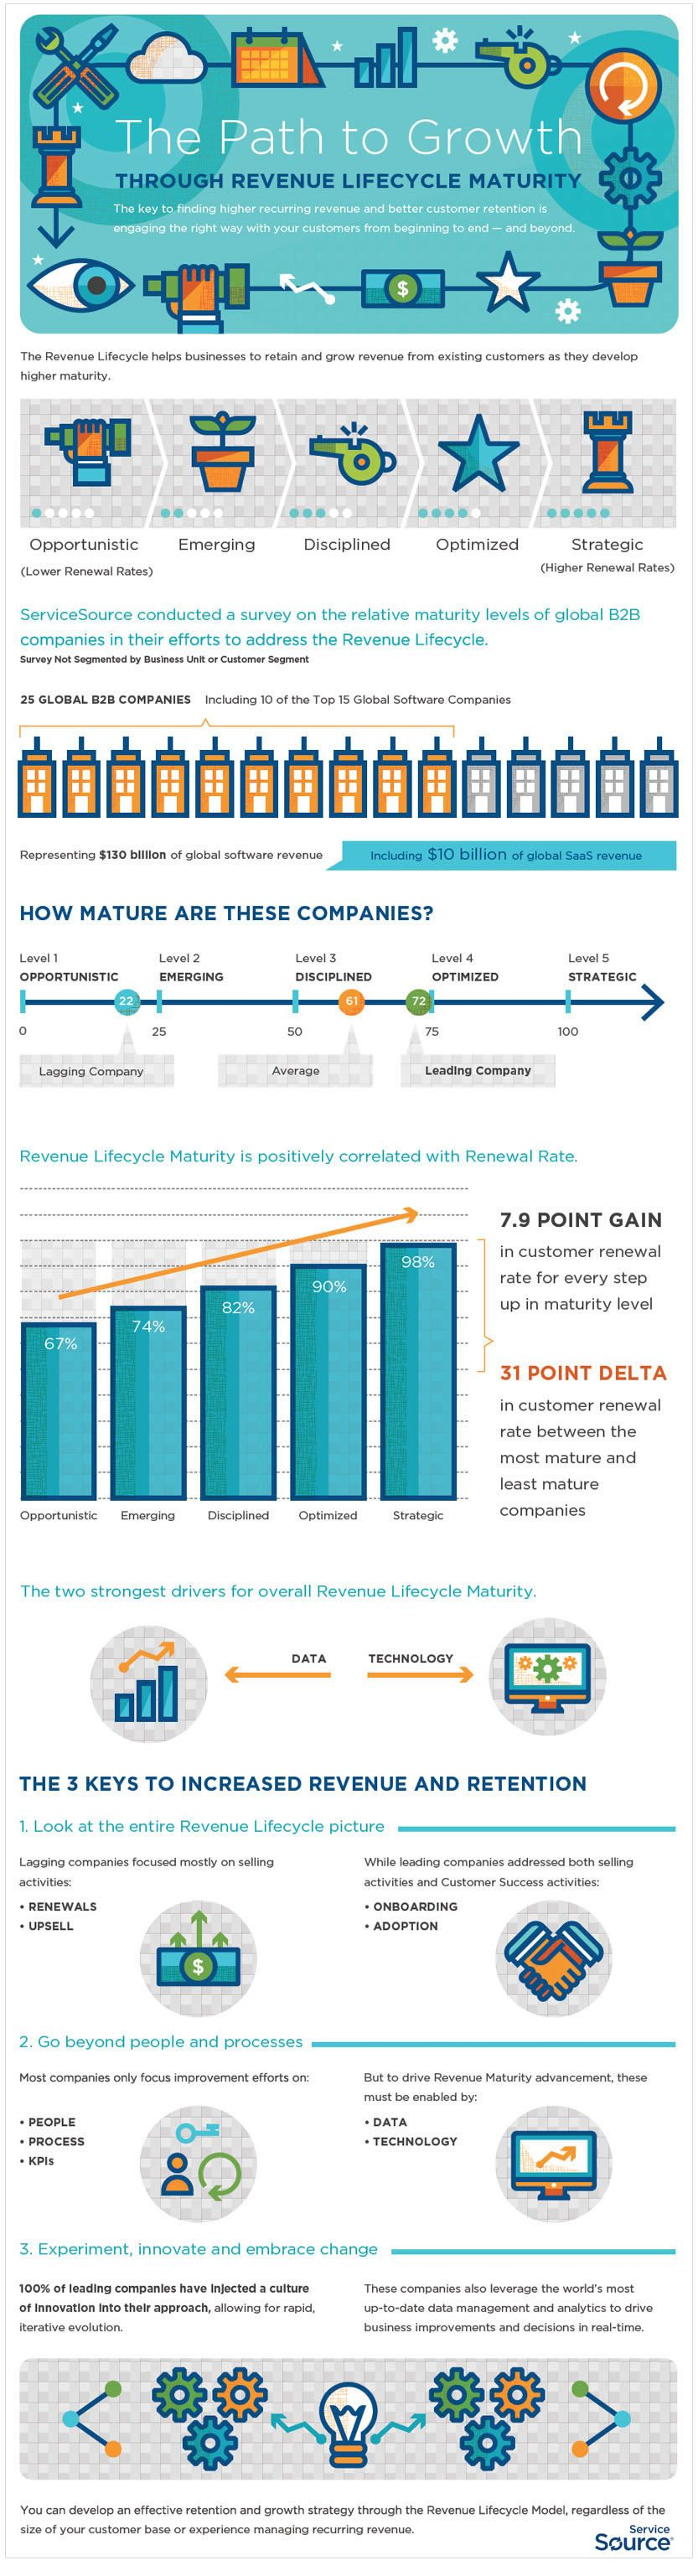 The Path to Growth Through Revenue Lifecycle Maturity